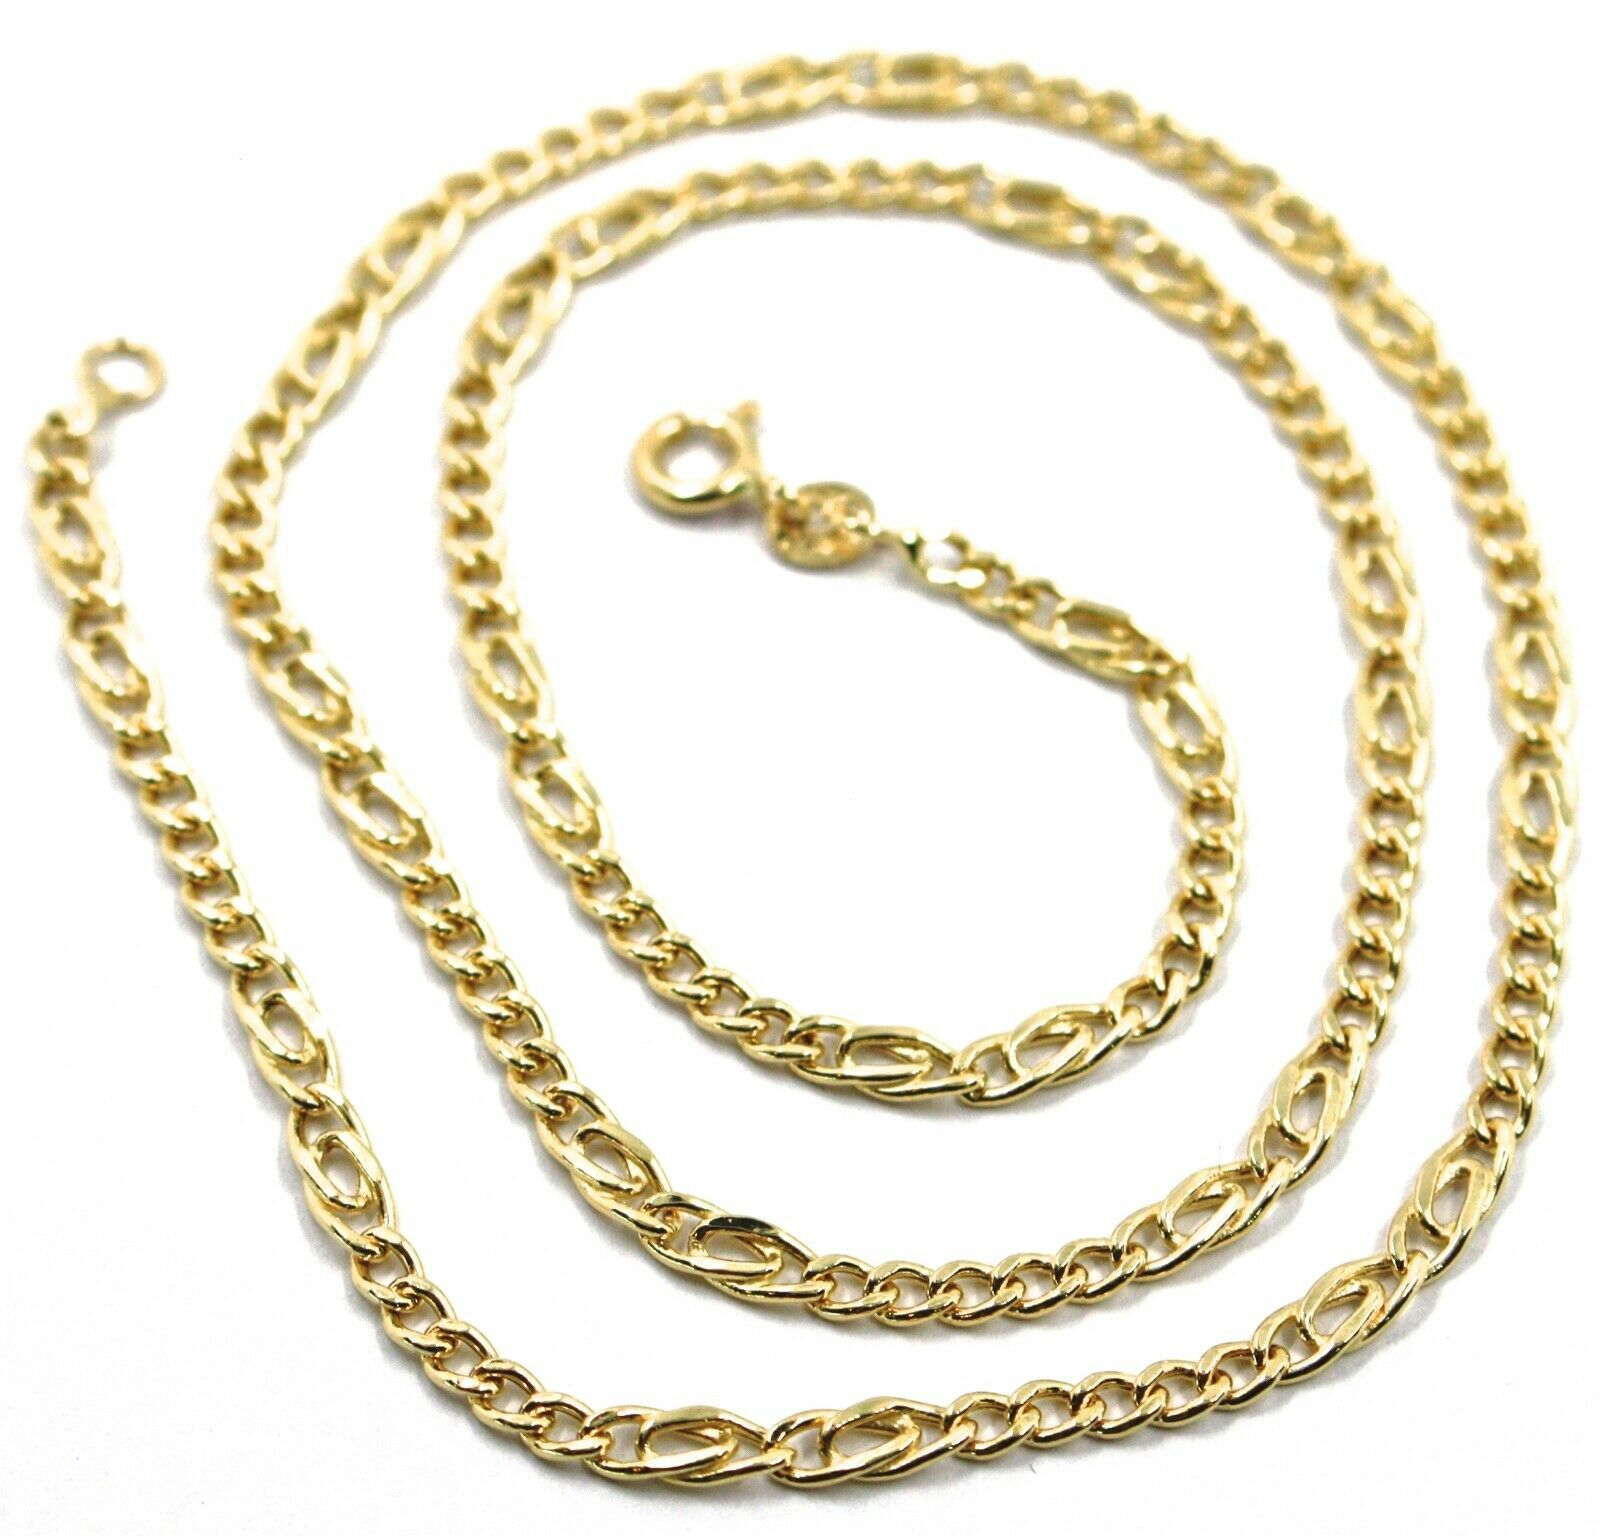 18K YELLOW GOLD CHAIN 3 MM, 20 INCHES, ALTERNATE 5 GOURMETTE, 2 TIGER EYE LINKS